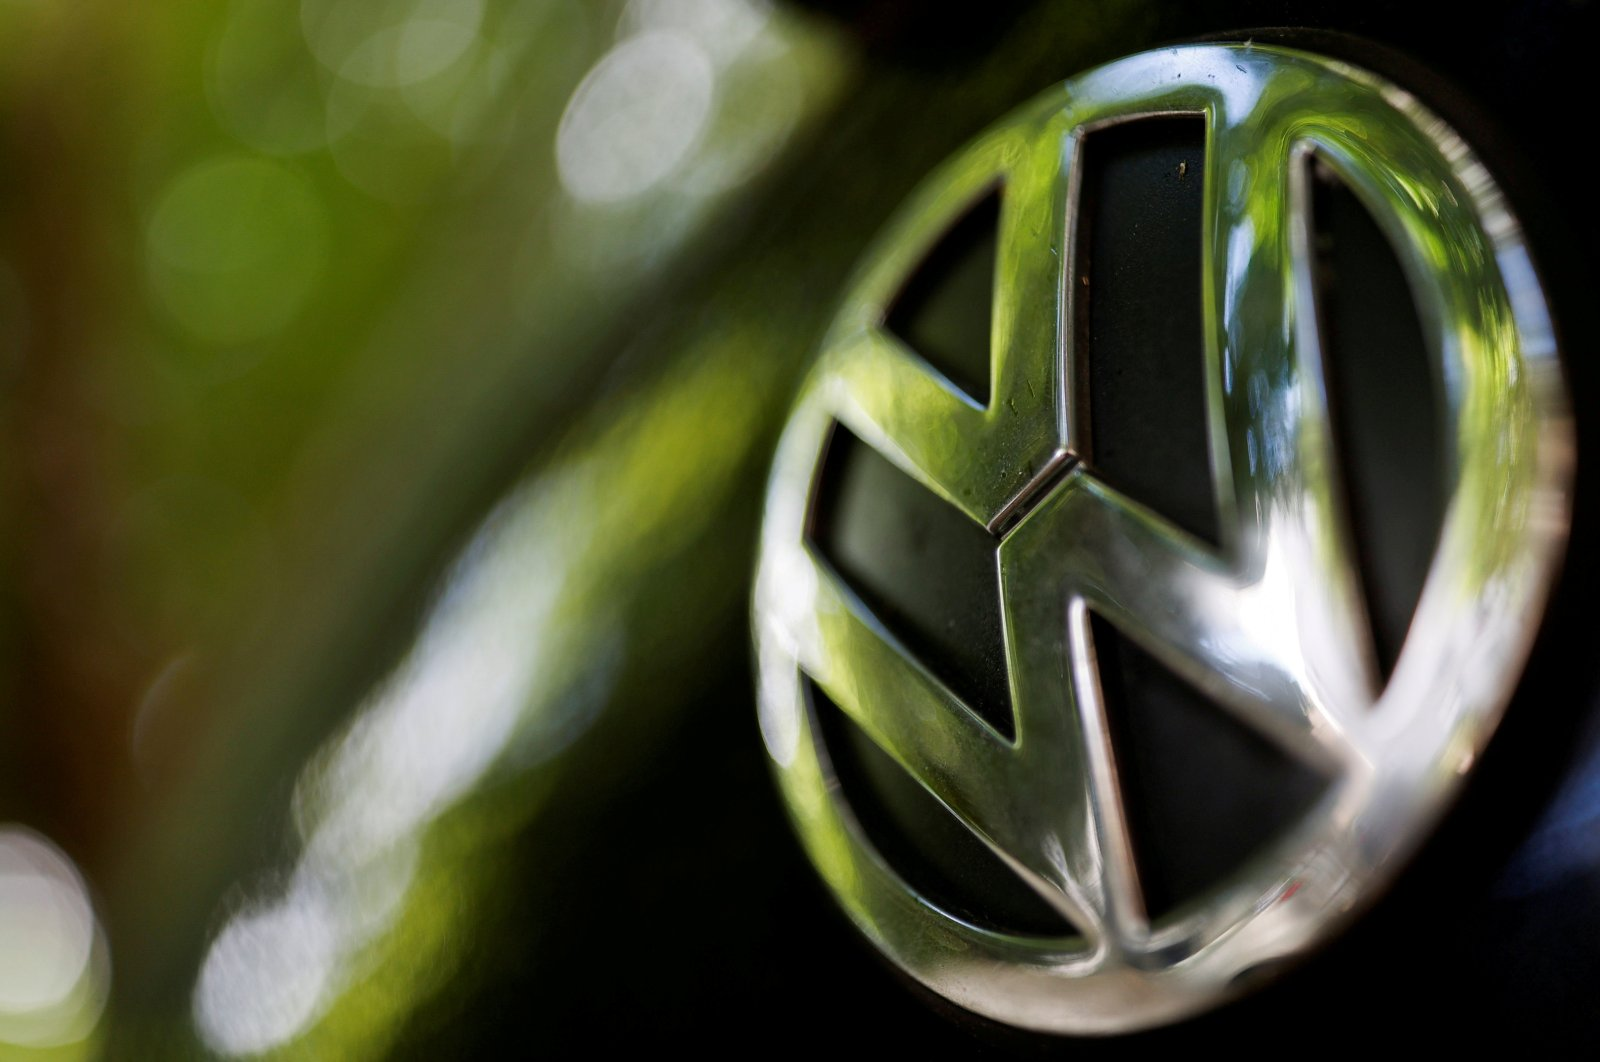 A logo of German carmaker Volkswagen is seen on a car parked on a street in Paris, France, July 9, 2020. (Reuters Photo)